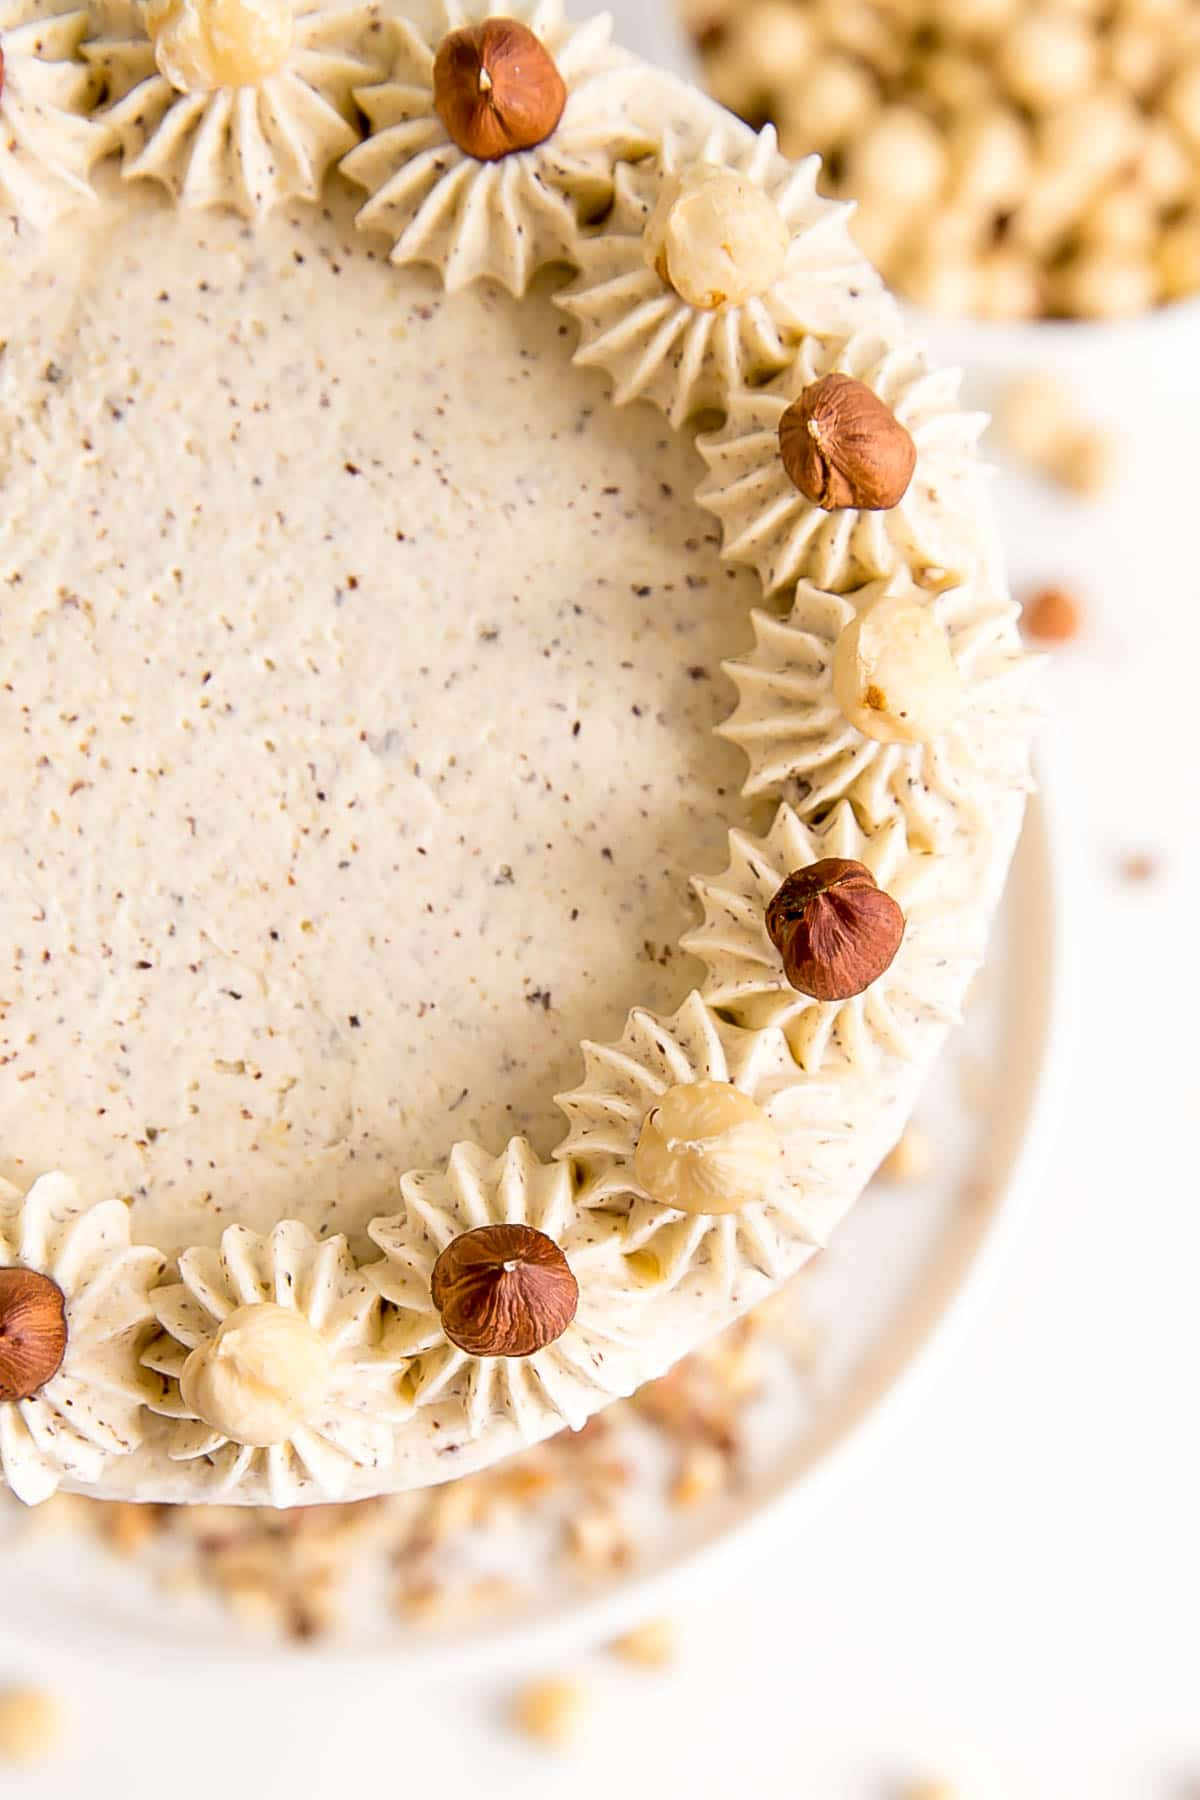 Overhead shot of the cake showing dollops and hazelnuts.